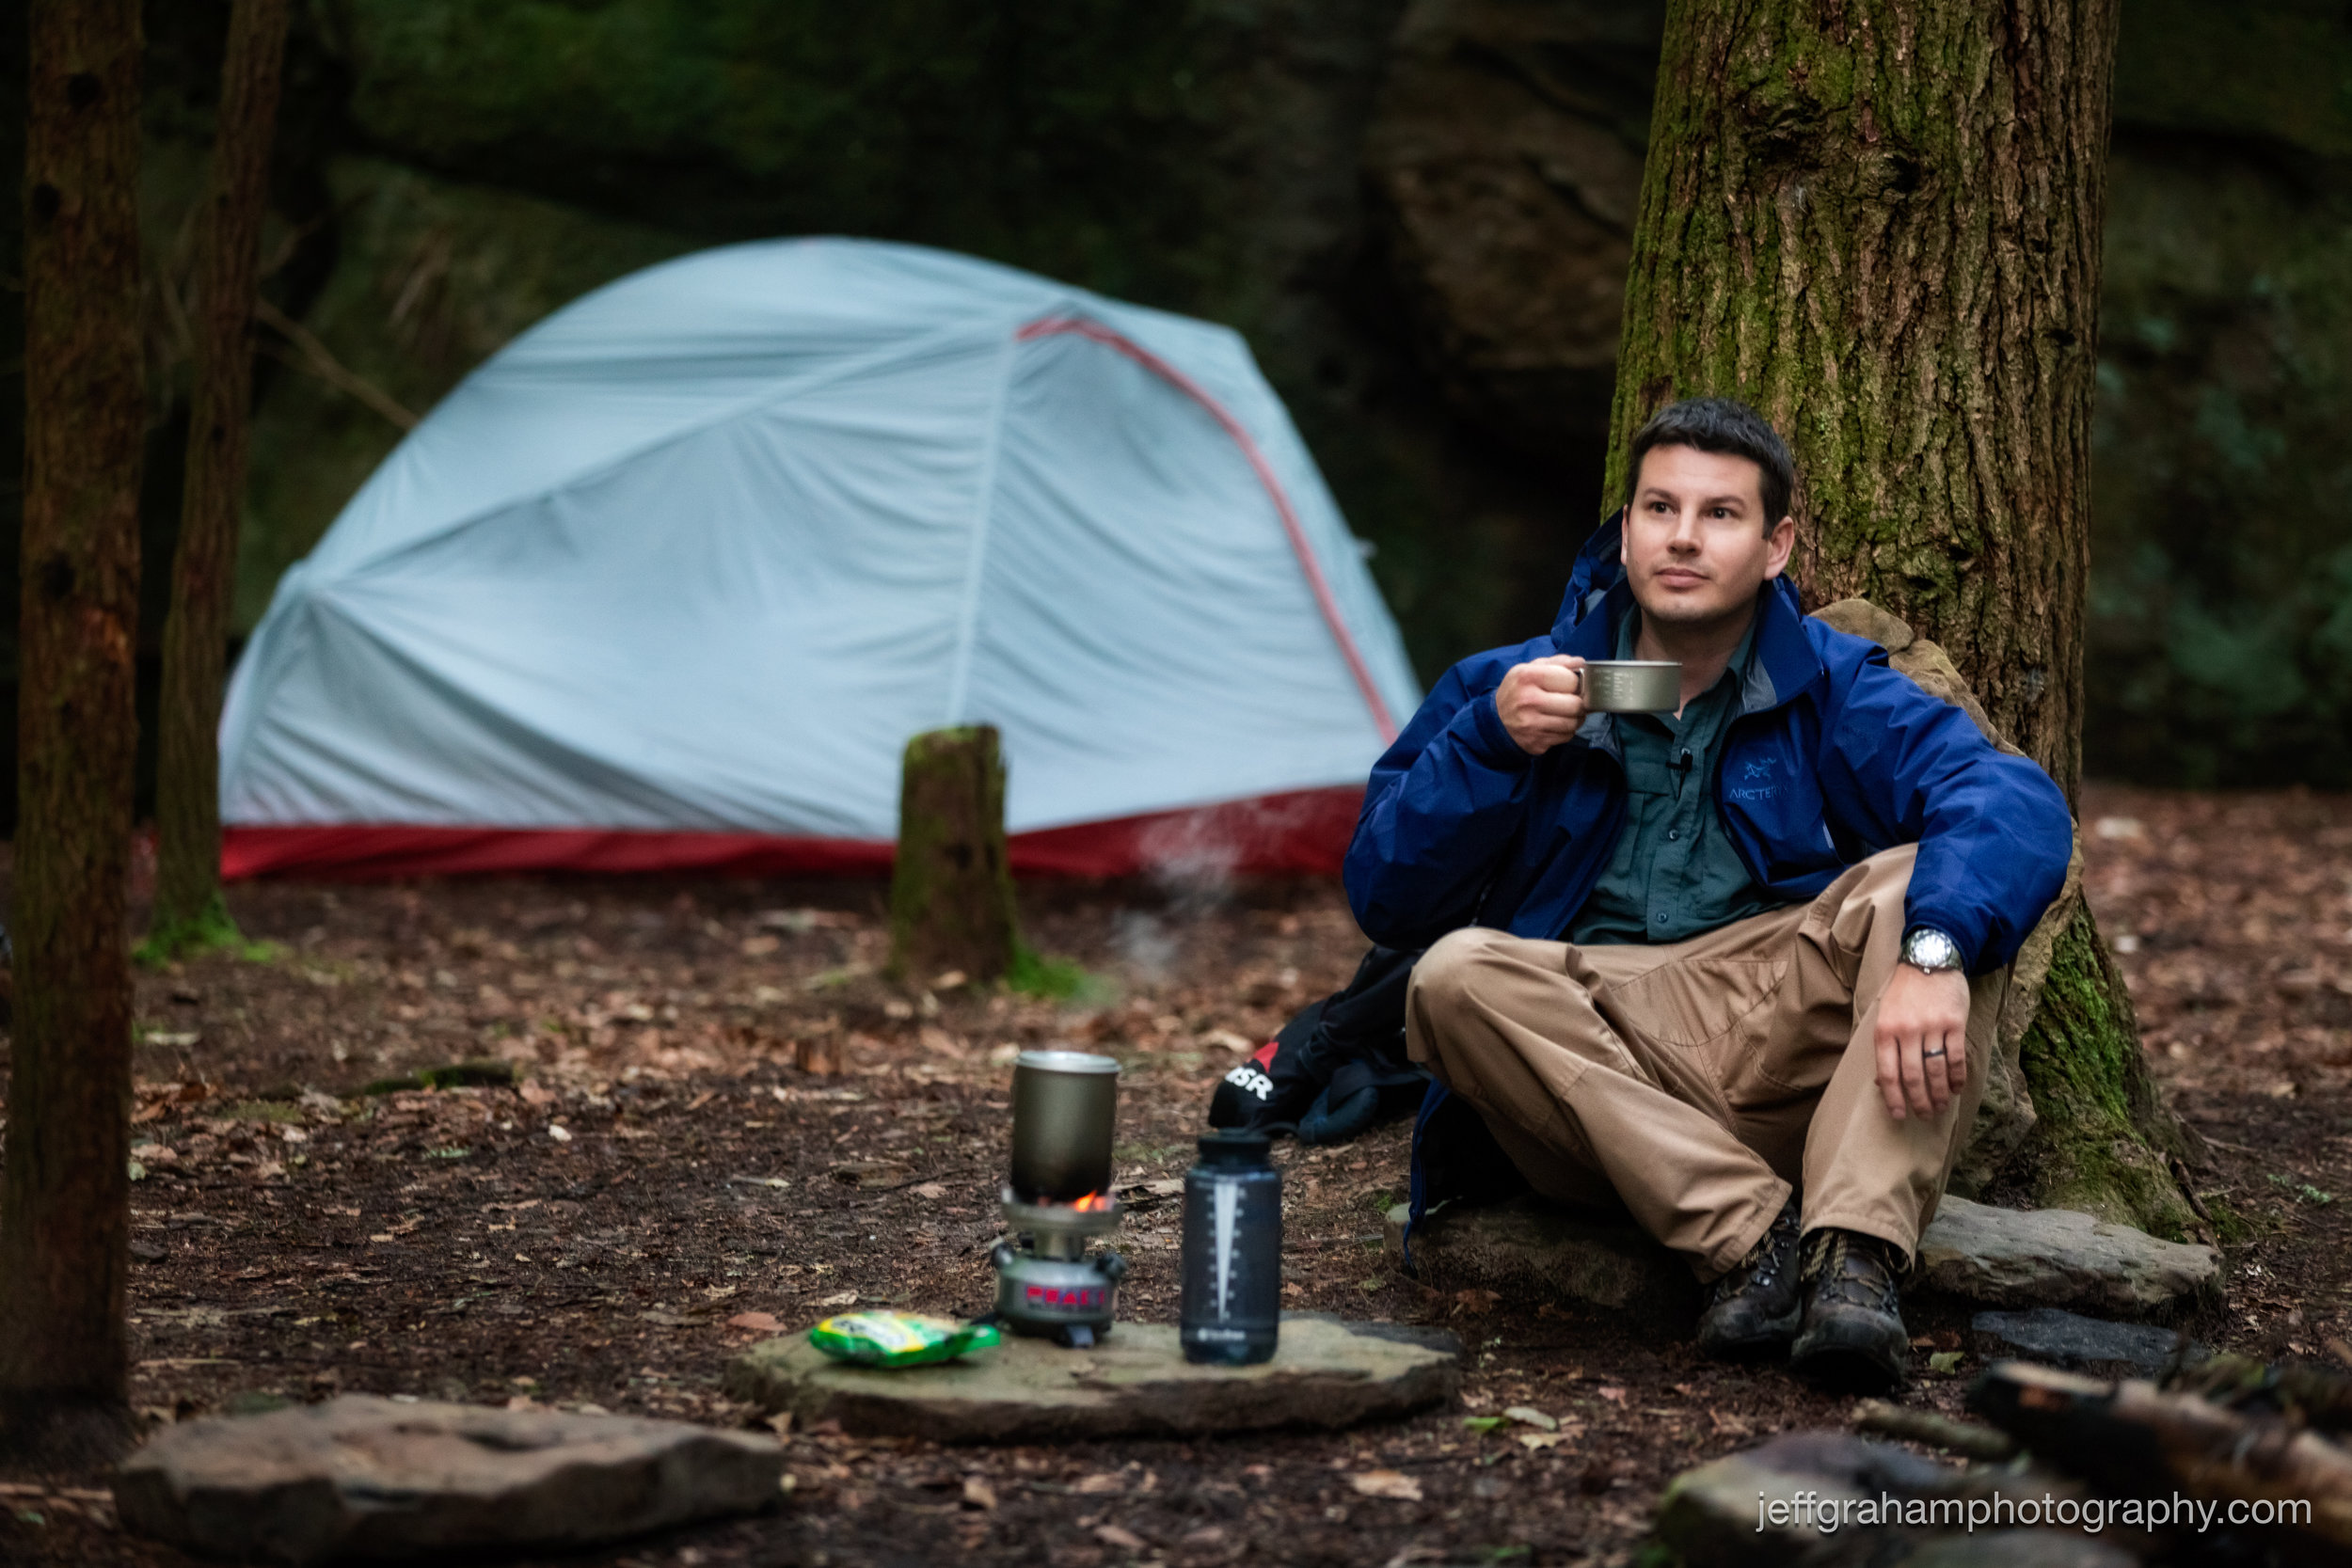 Can't start the day without a cup of coffee, even in the middle of nowhere!